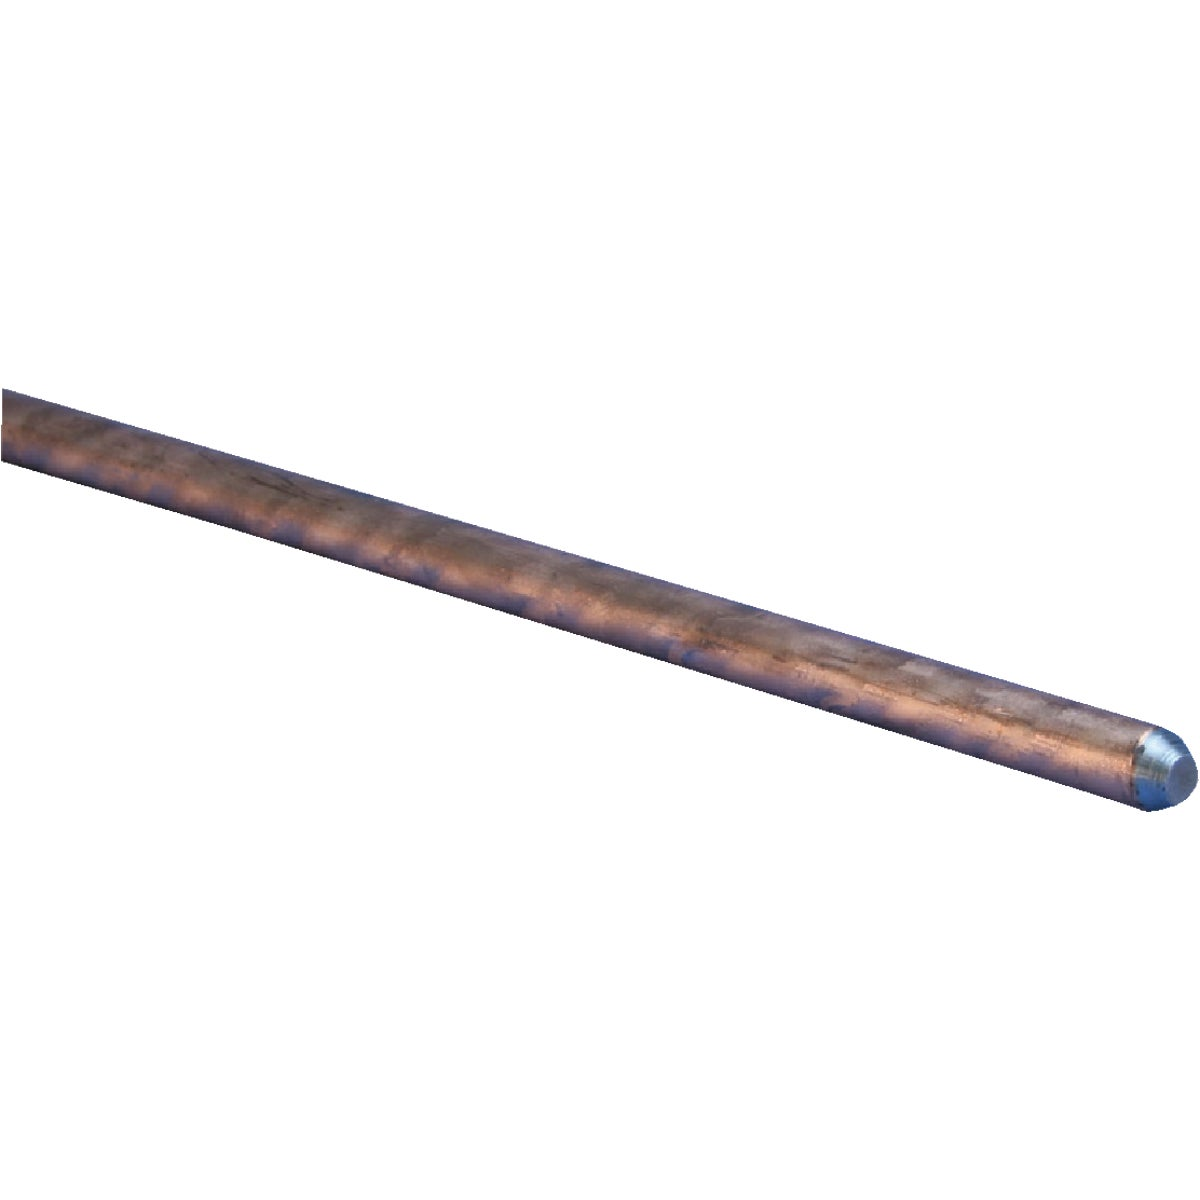 "5/8""X4' GROUND ROD"